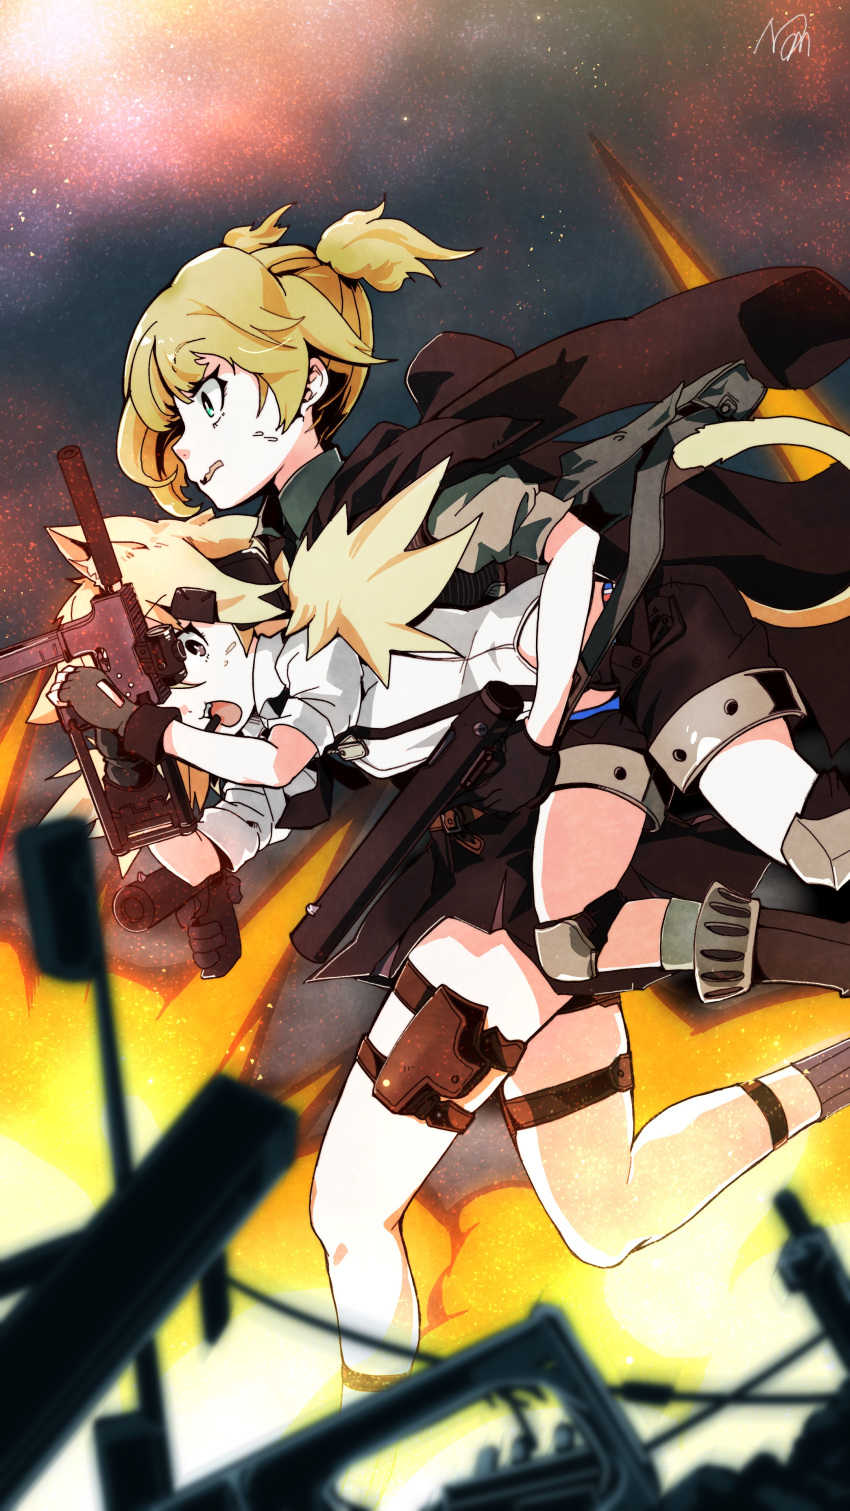 2girls absurdres animal_ear_fluff animal_ears bangs black_gloves black_shorts black_skirt blonde_hair carrying cat_ears cat_tail explosion girls_frontline gloves gun handgun highres holding holding_gun holding_weapon holster idw_(girls_frontline) jacket jacket_on_shoulders long_hair mineta_naoki multiple_girls open_mouth outdoors running shirt shorts signature skirt sky star_(sky) starry_sky submachine_gun suspender_shorts suspenders sweat tail thigh_strap vest wavy_mouth weapon welrod_mk2 welrod_mk2_(girls_frontline)